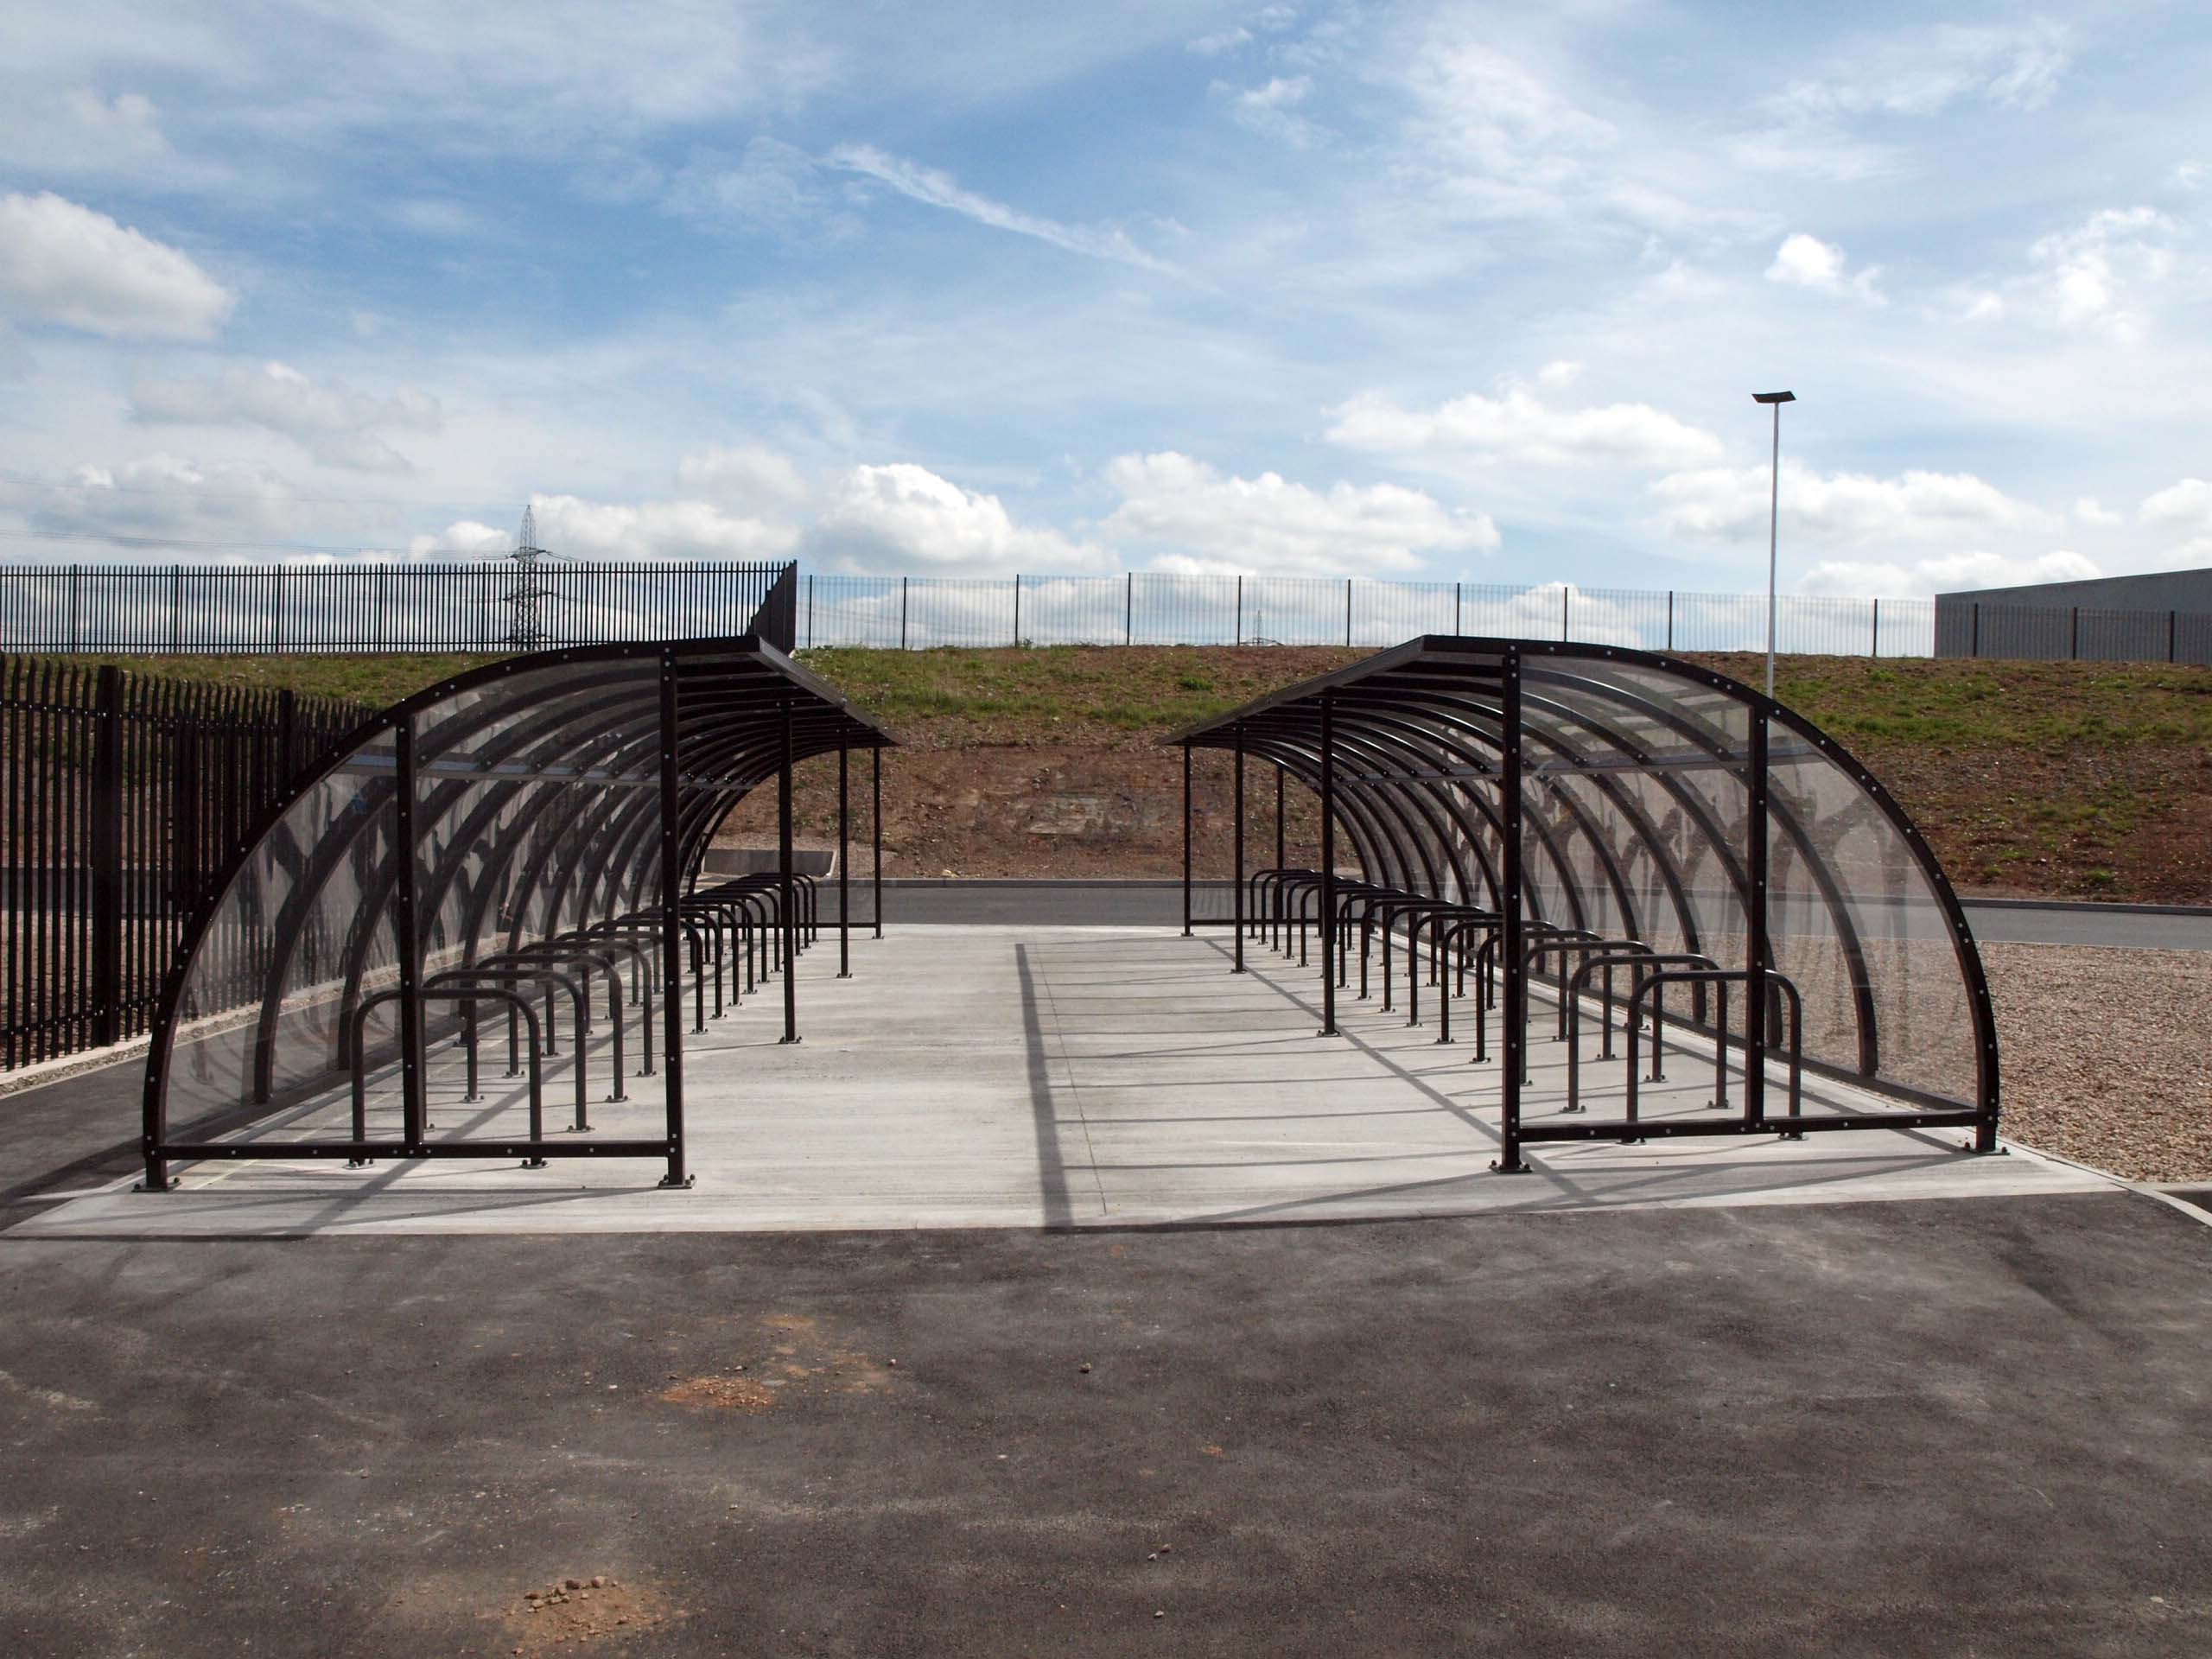 BMW/MINI manufacturing plant installs new Cycle Storage facility article image